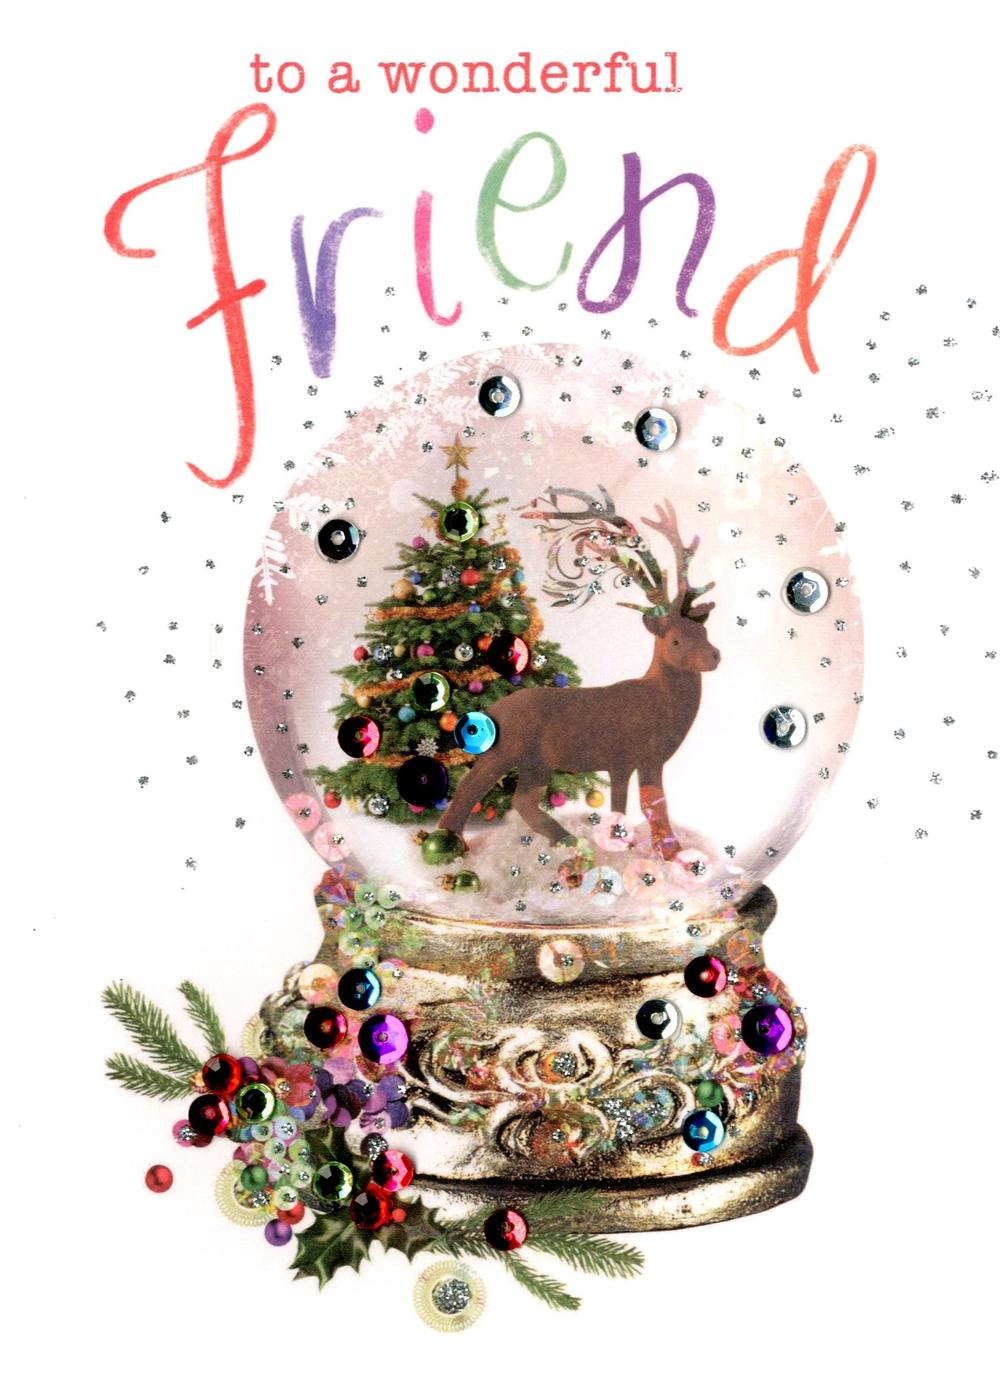 Wonderful Friend Embellished Christmas Card